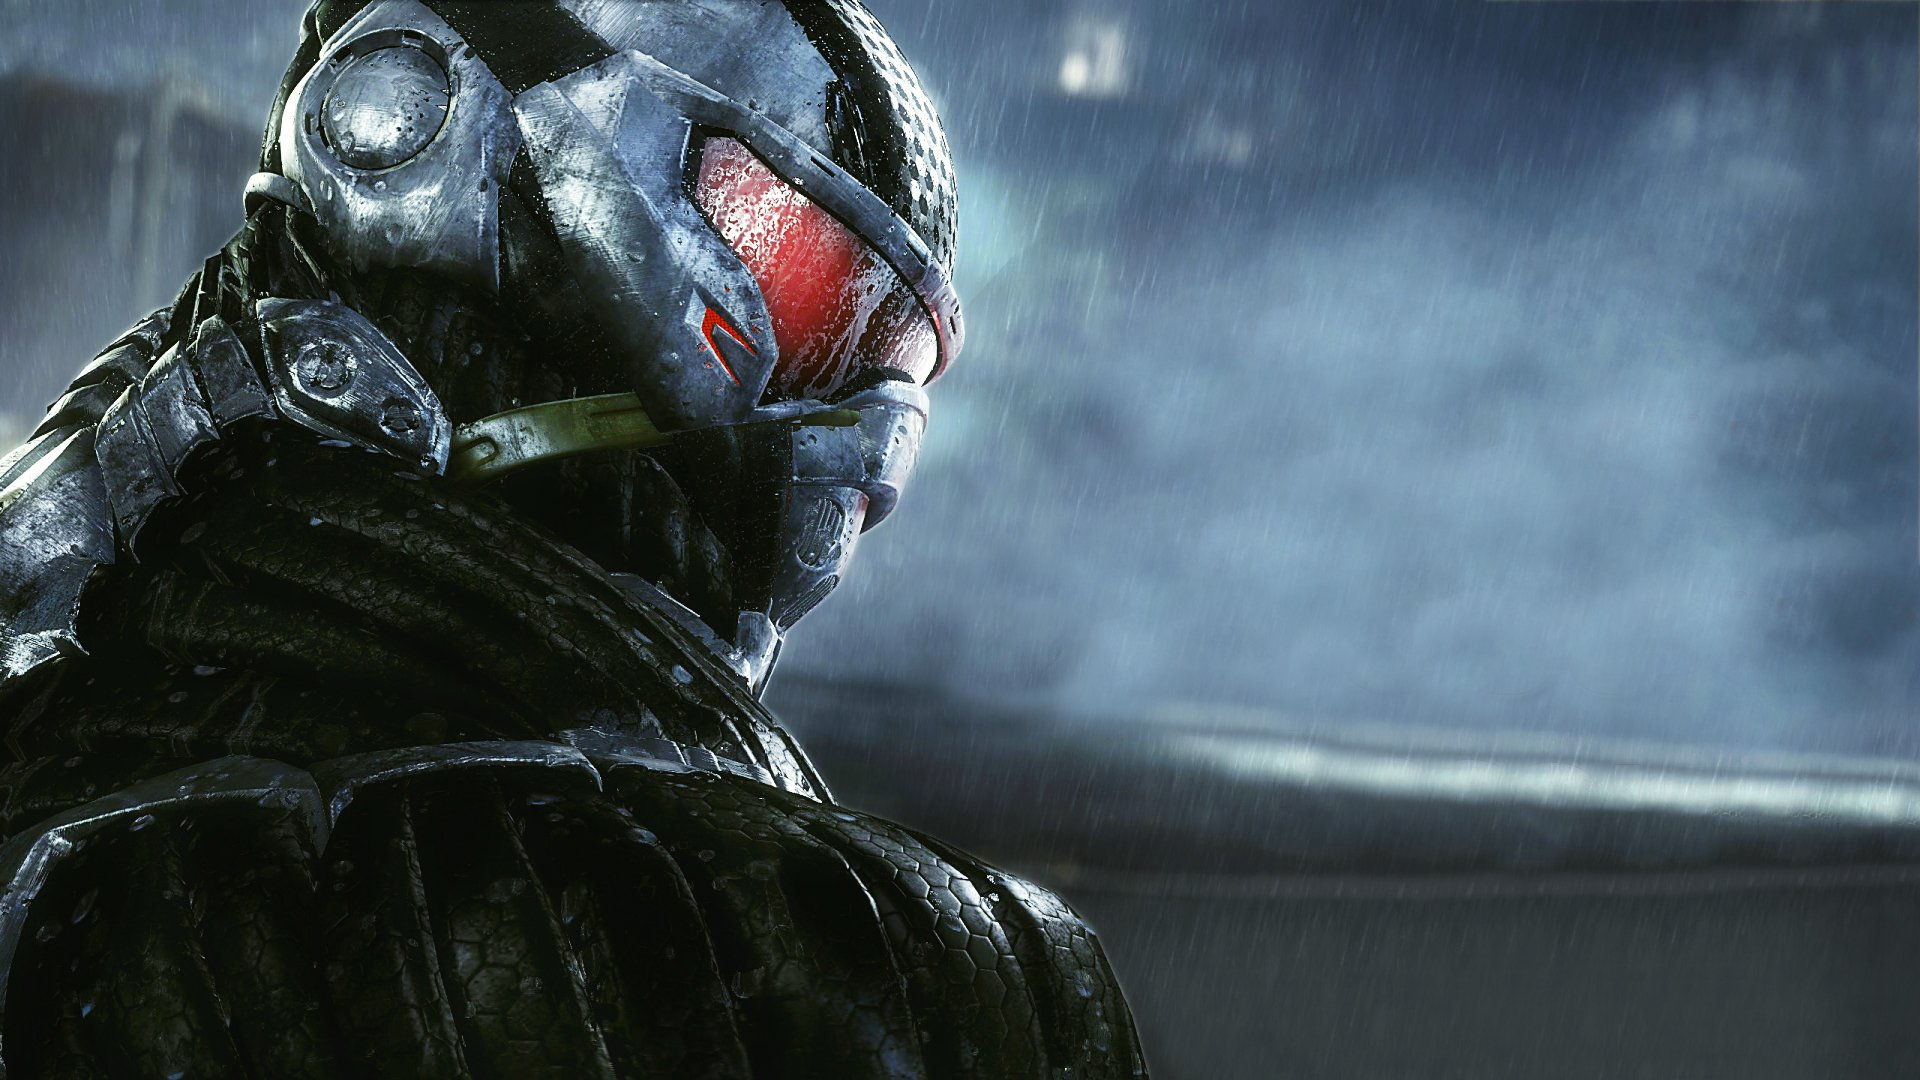 crysis 3 computer wallpapers desktop backgrounds